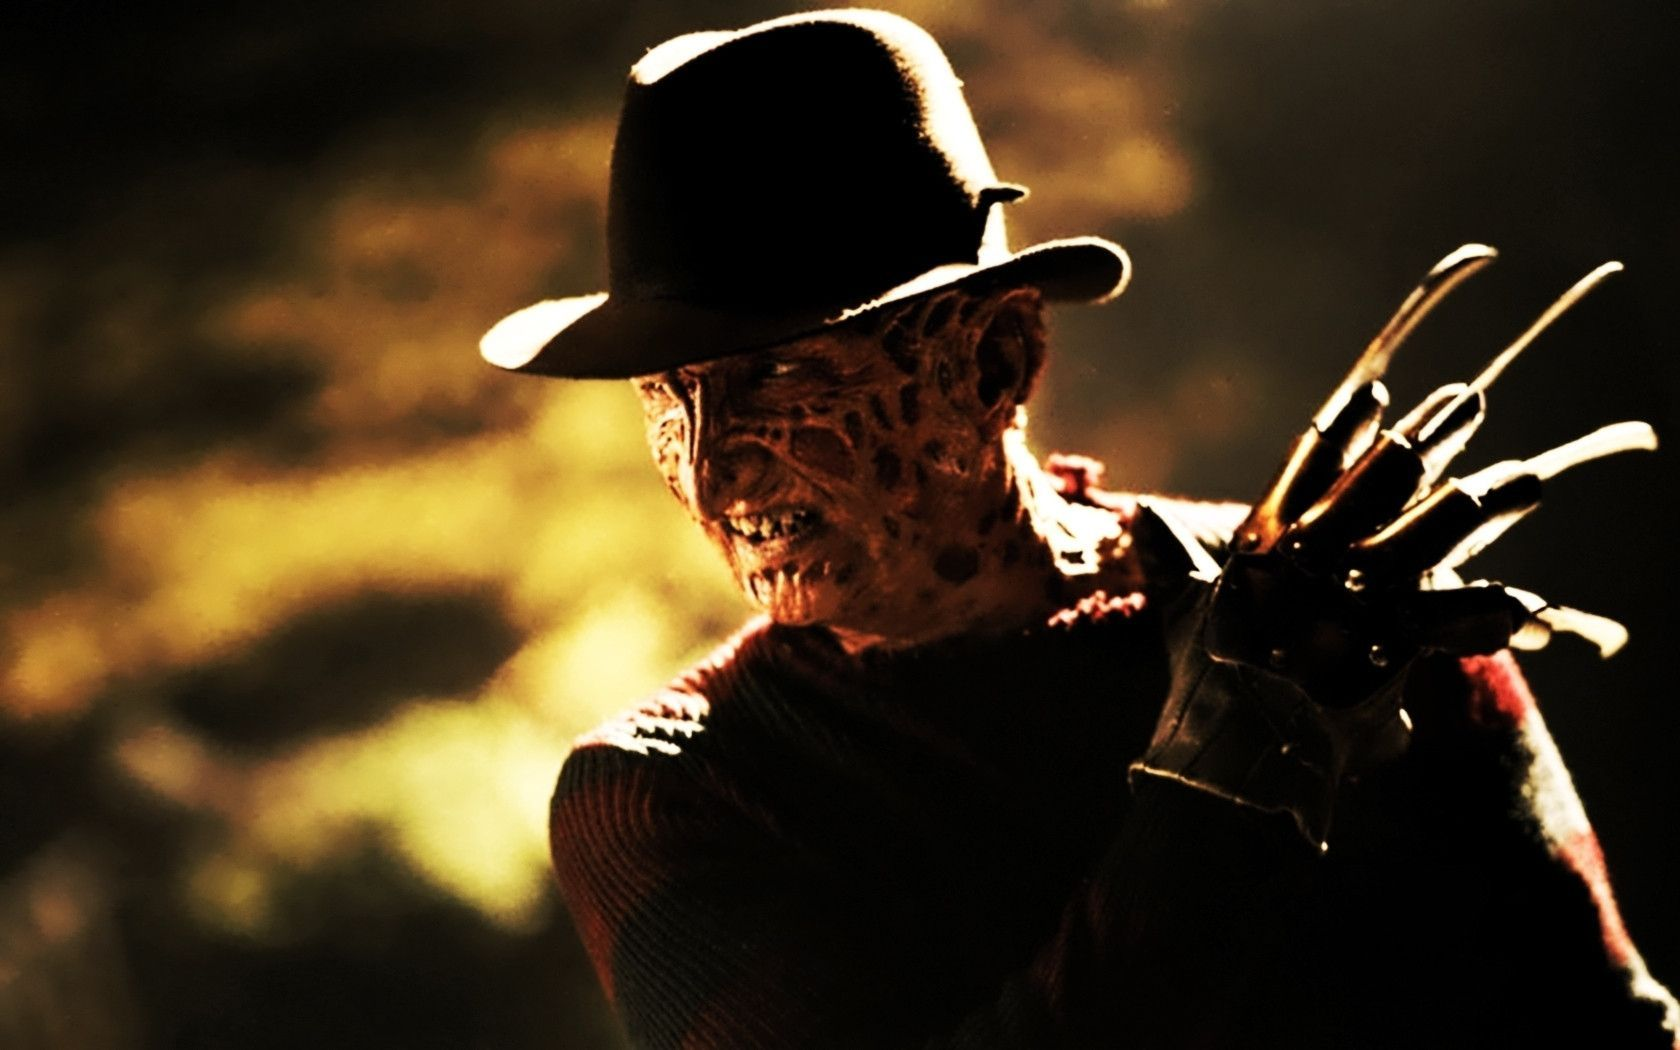 freddy-krueger-wallpaper-6